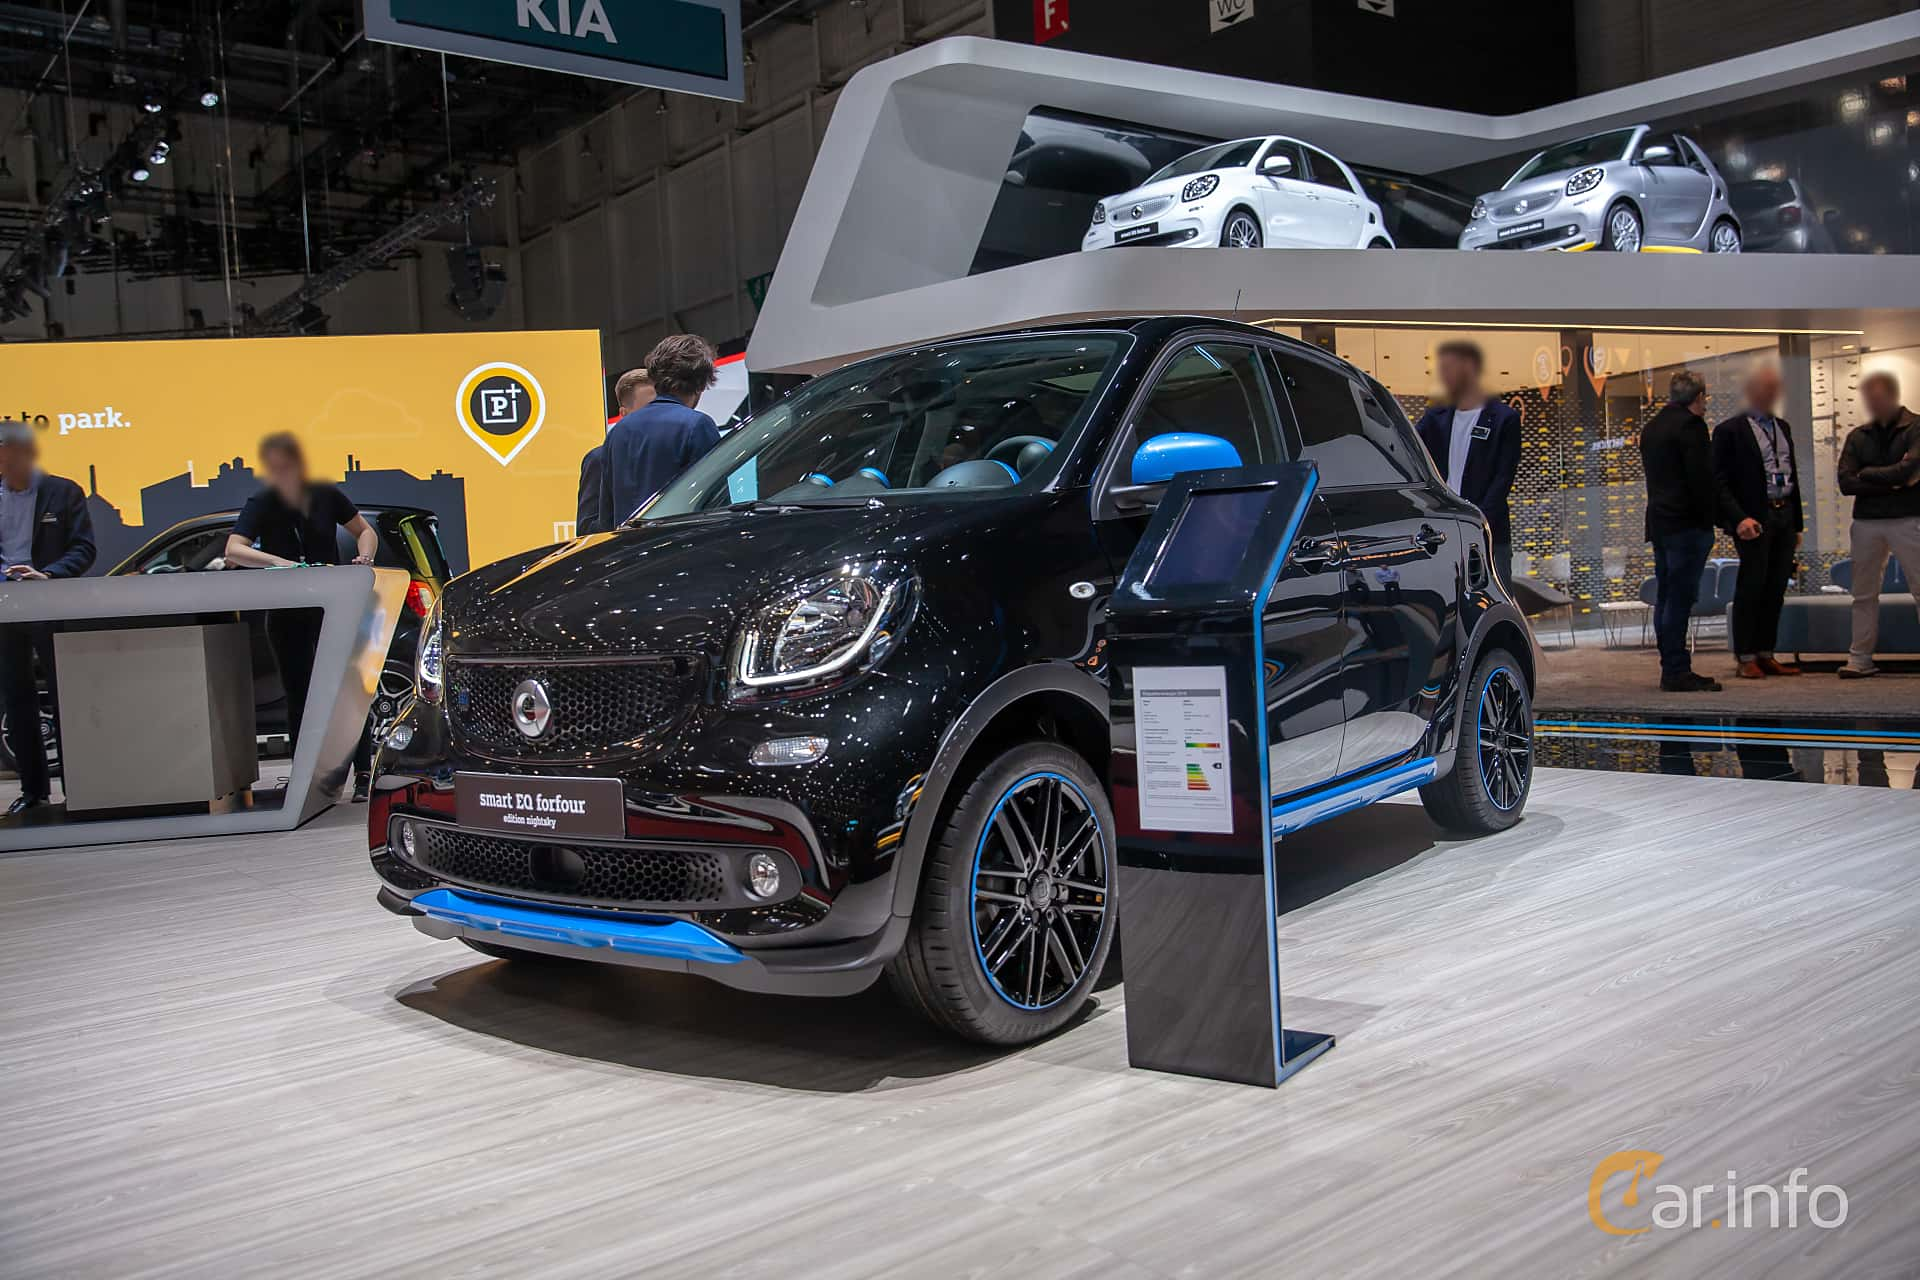 Smart forfour electric drive 17.6 kWh Single Speed, 82hp, 2019 at Geneva Motor Show 2019